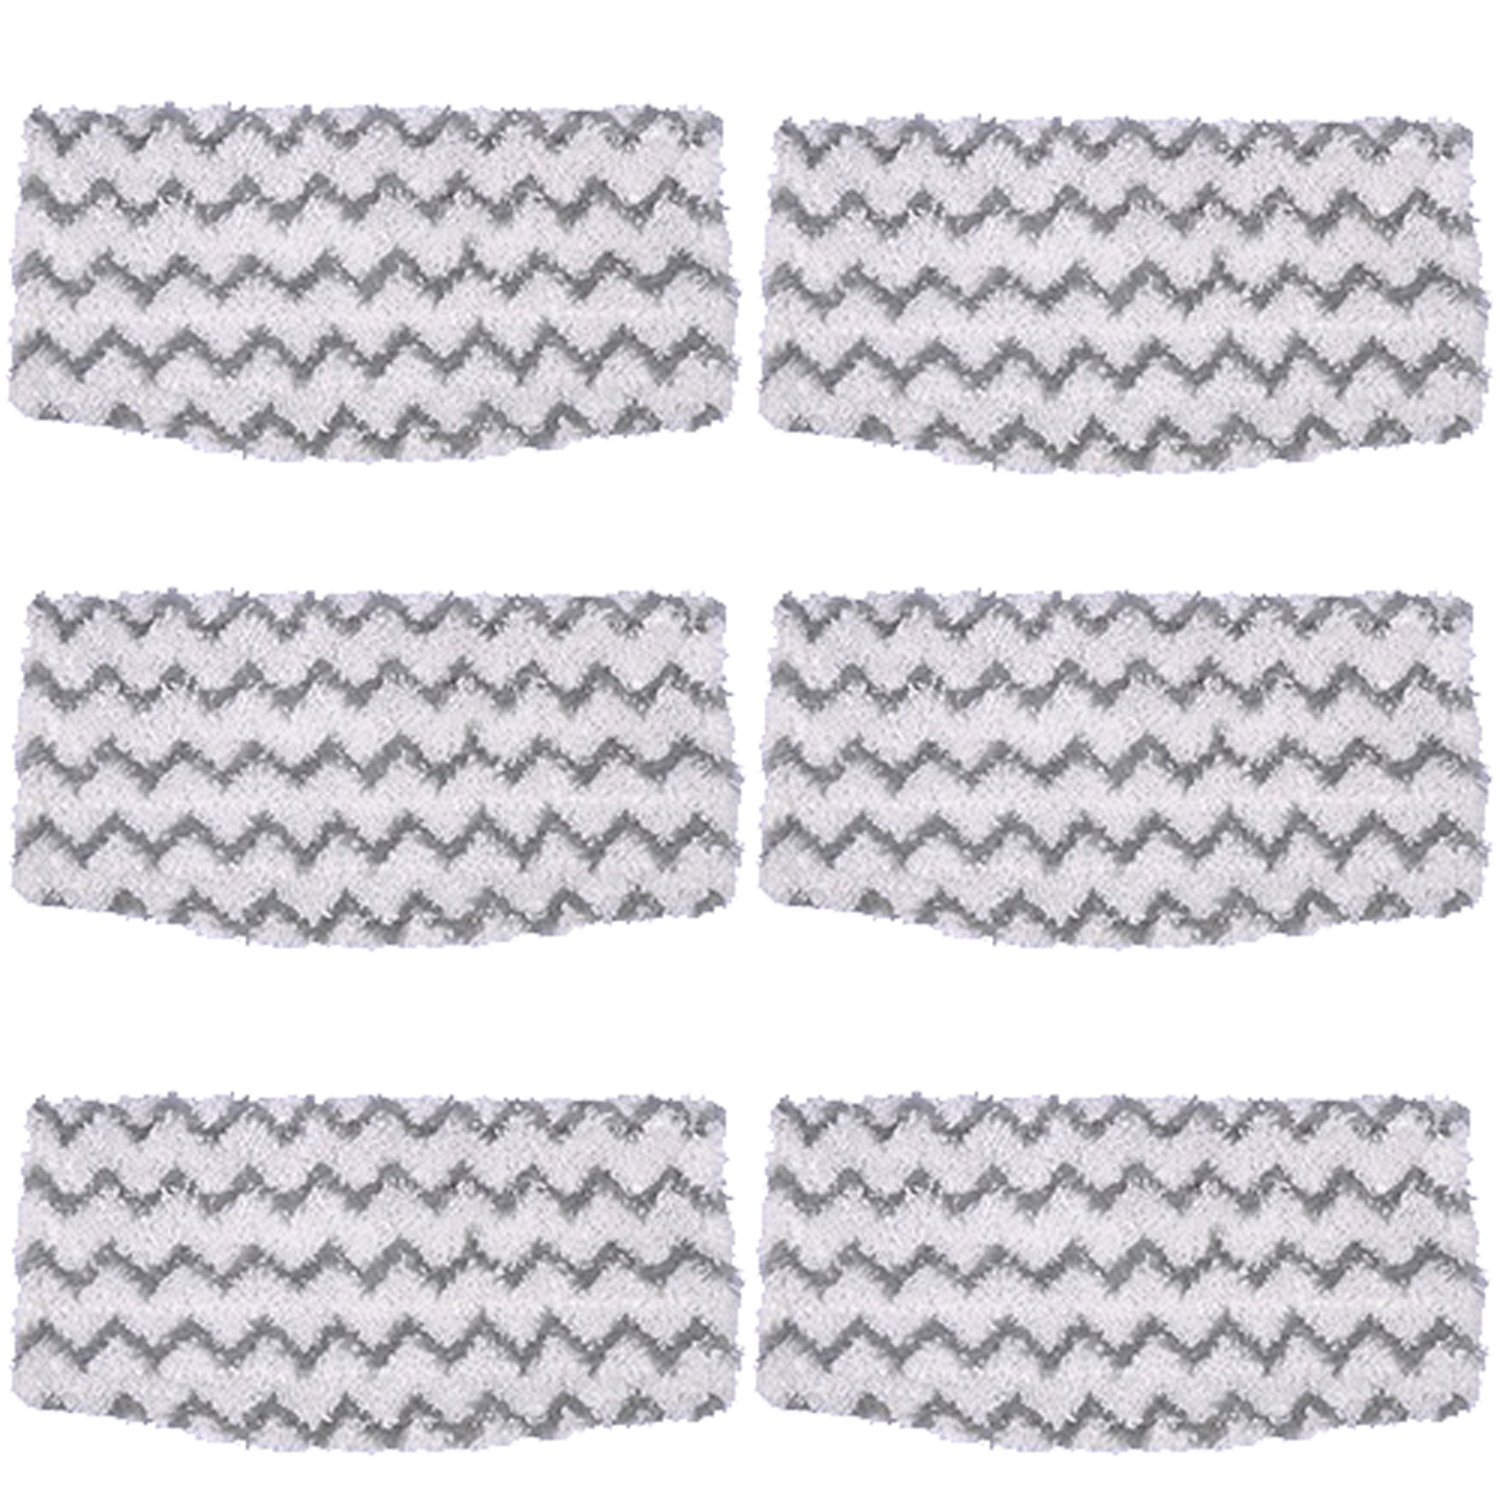 Amyehouse 6 Packs Dirt Grip Microfiber Pads Replacement for Shark Steam Mop S1000 S1000A S1000C S1000WM S1001C Vacuum Cleaners 20180314-4